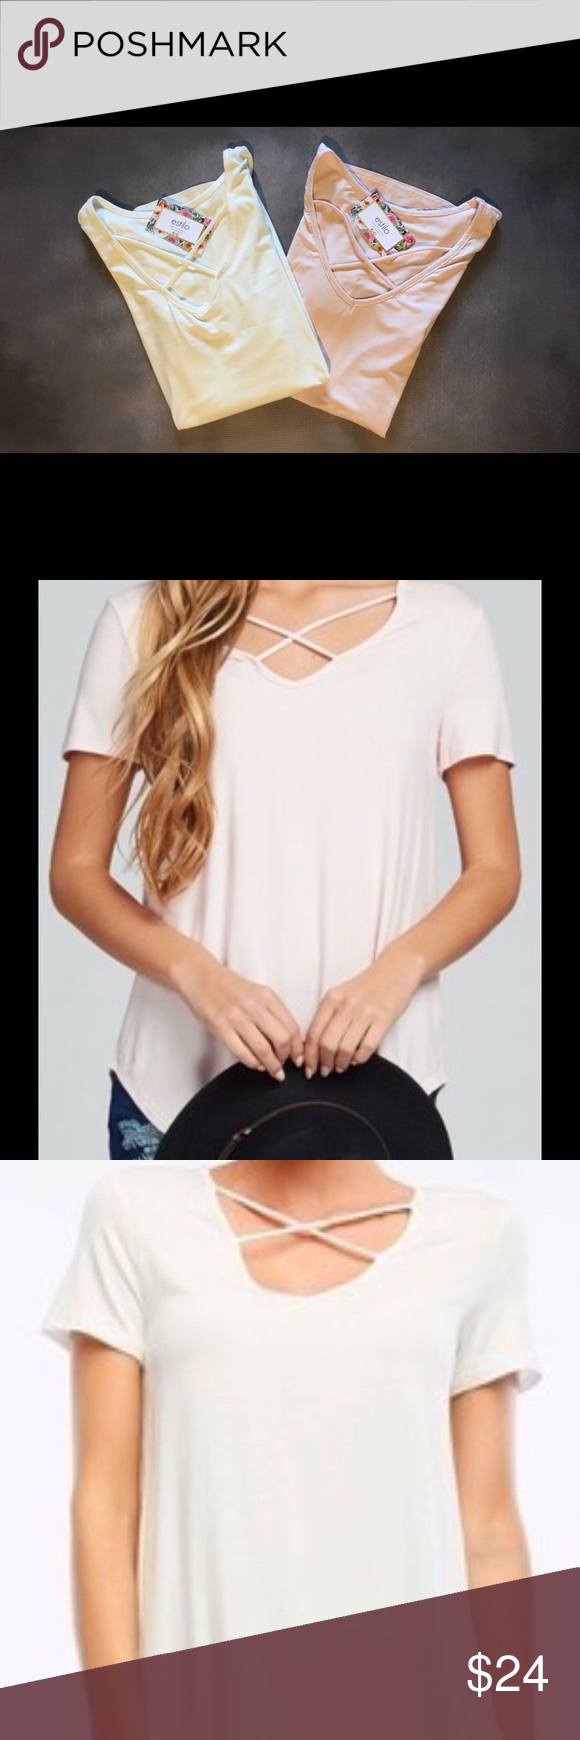 Meet Felicity! White Our New Favorite Top is HEREEEEE! Meet Felicity! This super soft crisscross tee is amazing!!! Made in the USA! 92% Rayon, 8% Spandex! This tee looks 👌🏼 with jeans, shorts and leggings! We love the fit! Comes in BLUSH and WHITE! $24 S-L! Tops